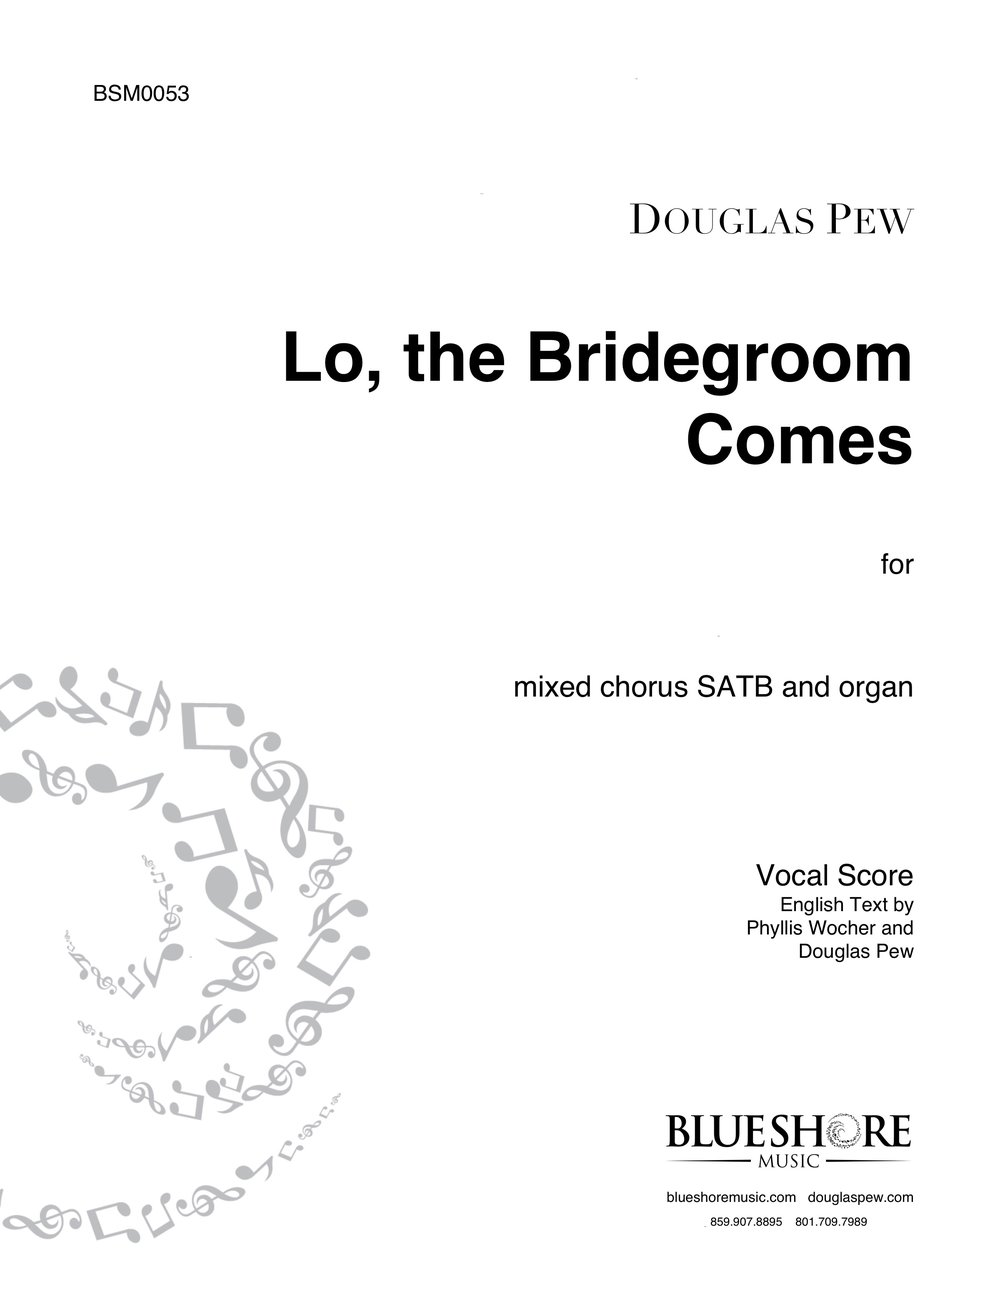 Lo, The Bridegroom Comes -  *COMING SOON*